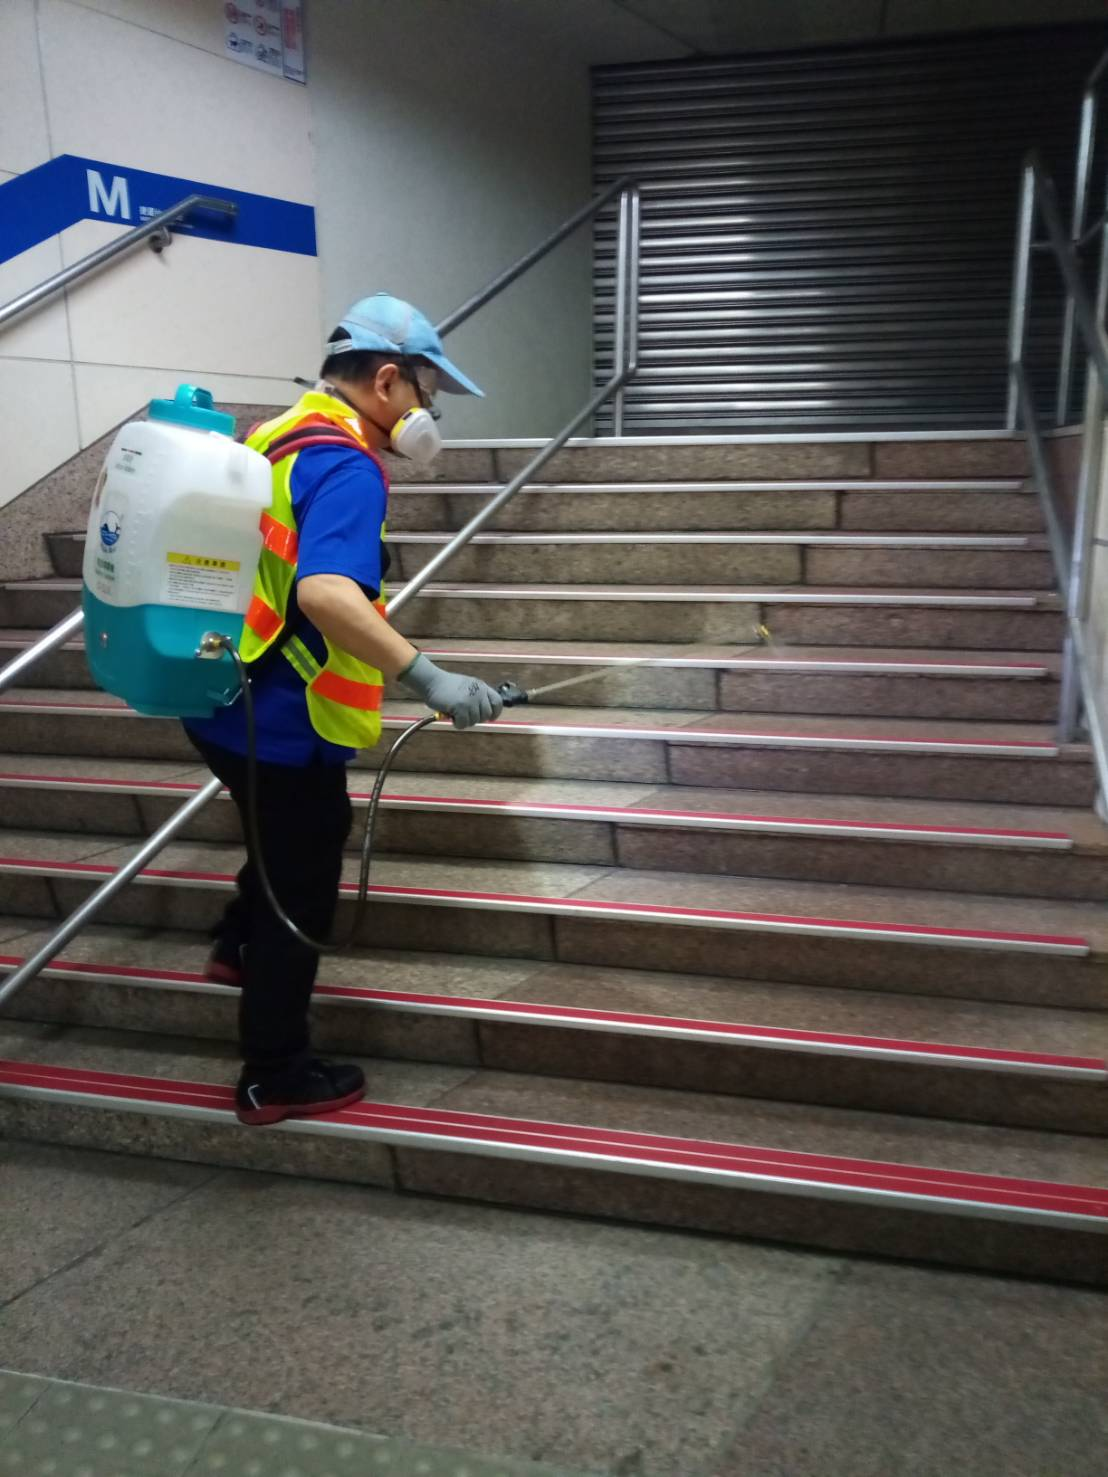 A worker disinfects the staircase at one of the MRT stations